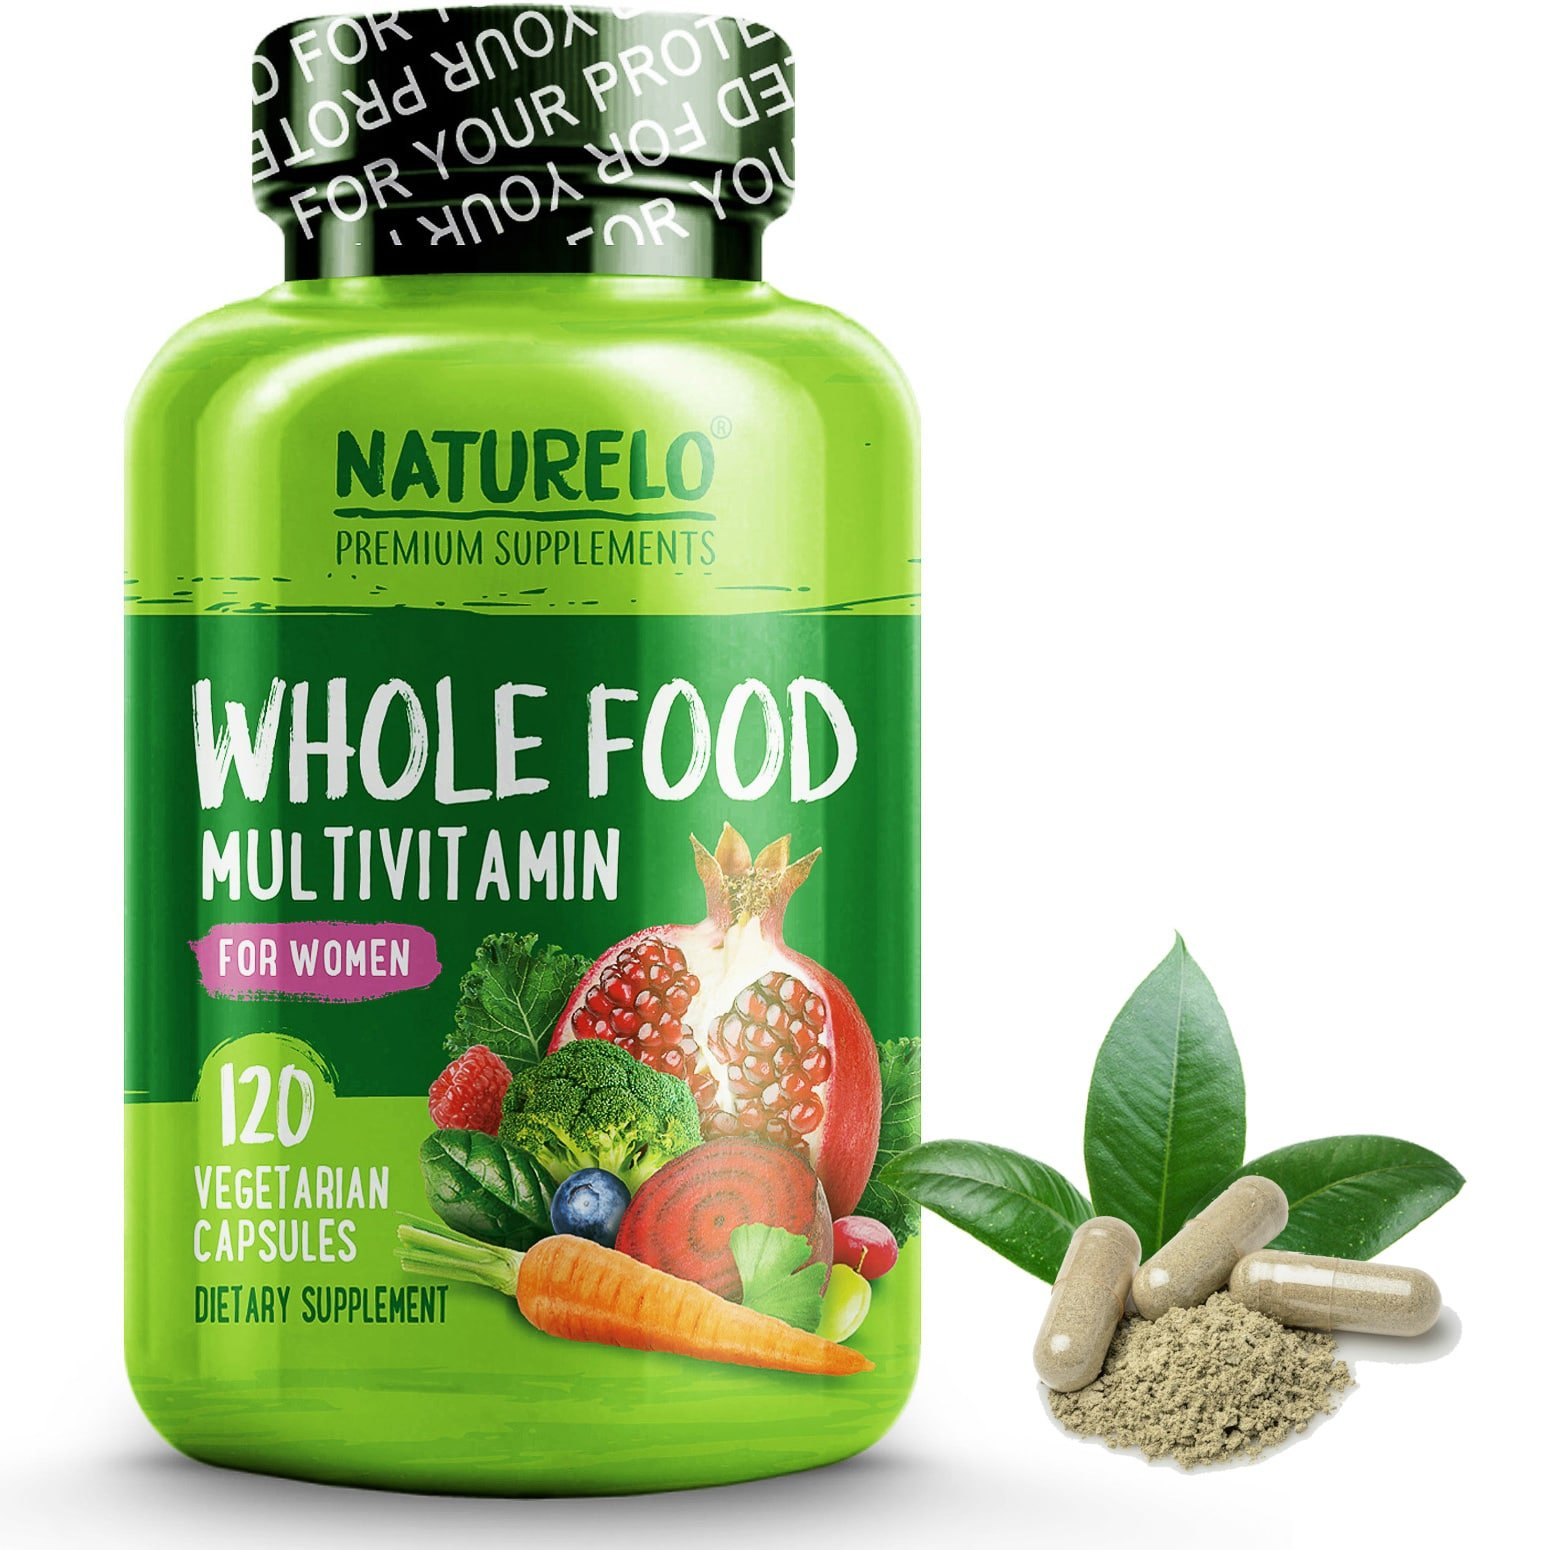 Amazon.com: NATURELO Whole Food Multivitamin for Men - with Natural Vitamins, Minerals, Organic